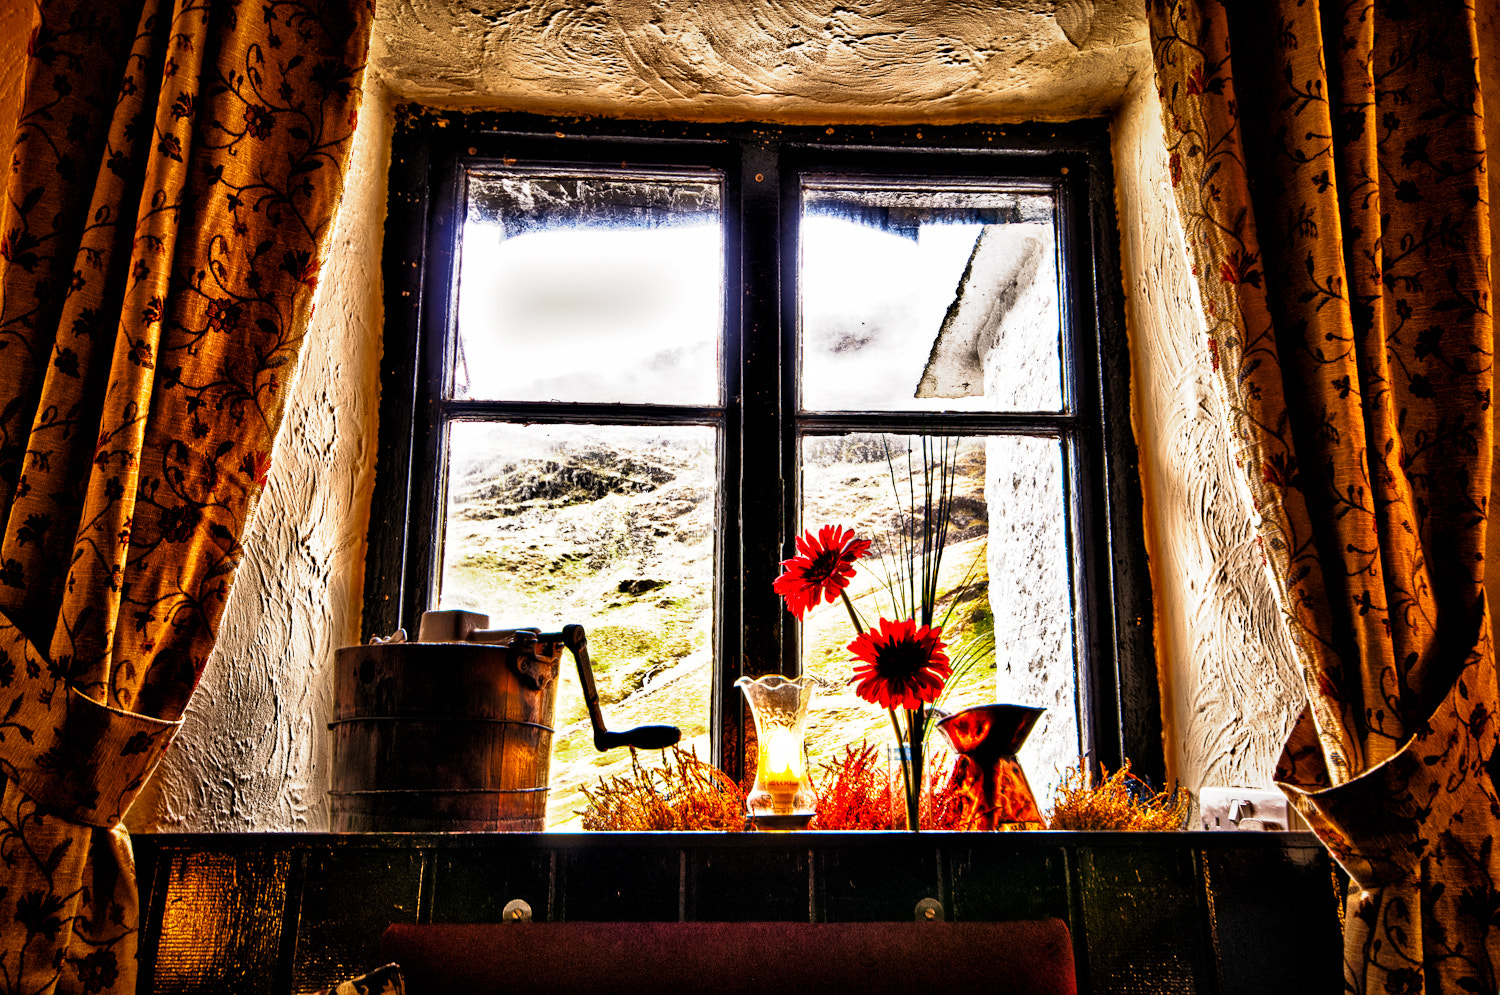 Photograph Kirkstone Pass Inn window by Martin Tyler on 500px